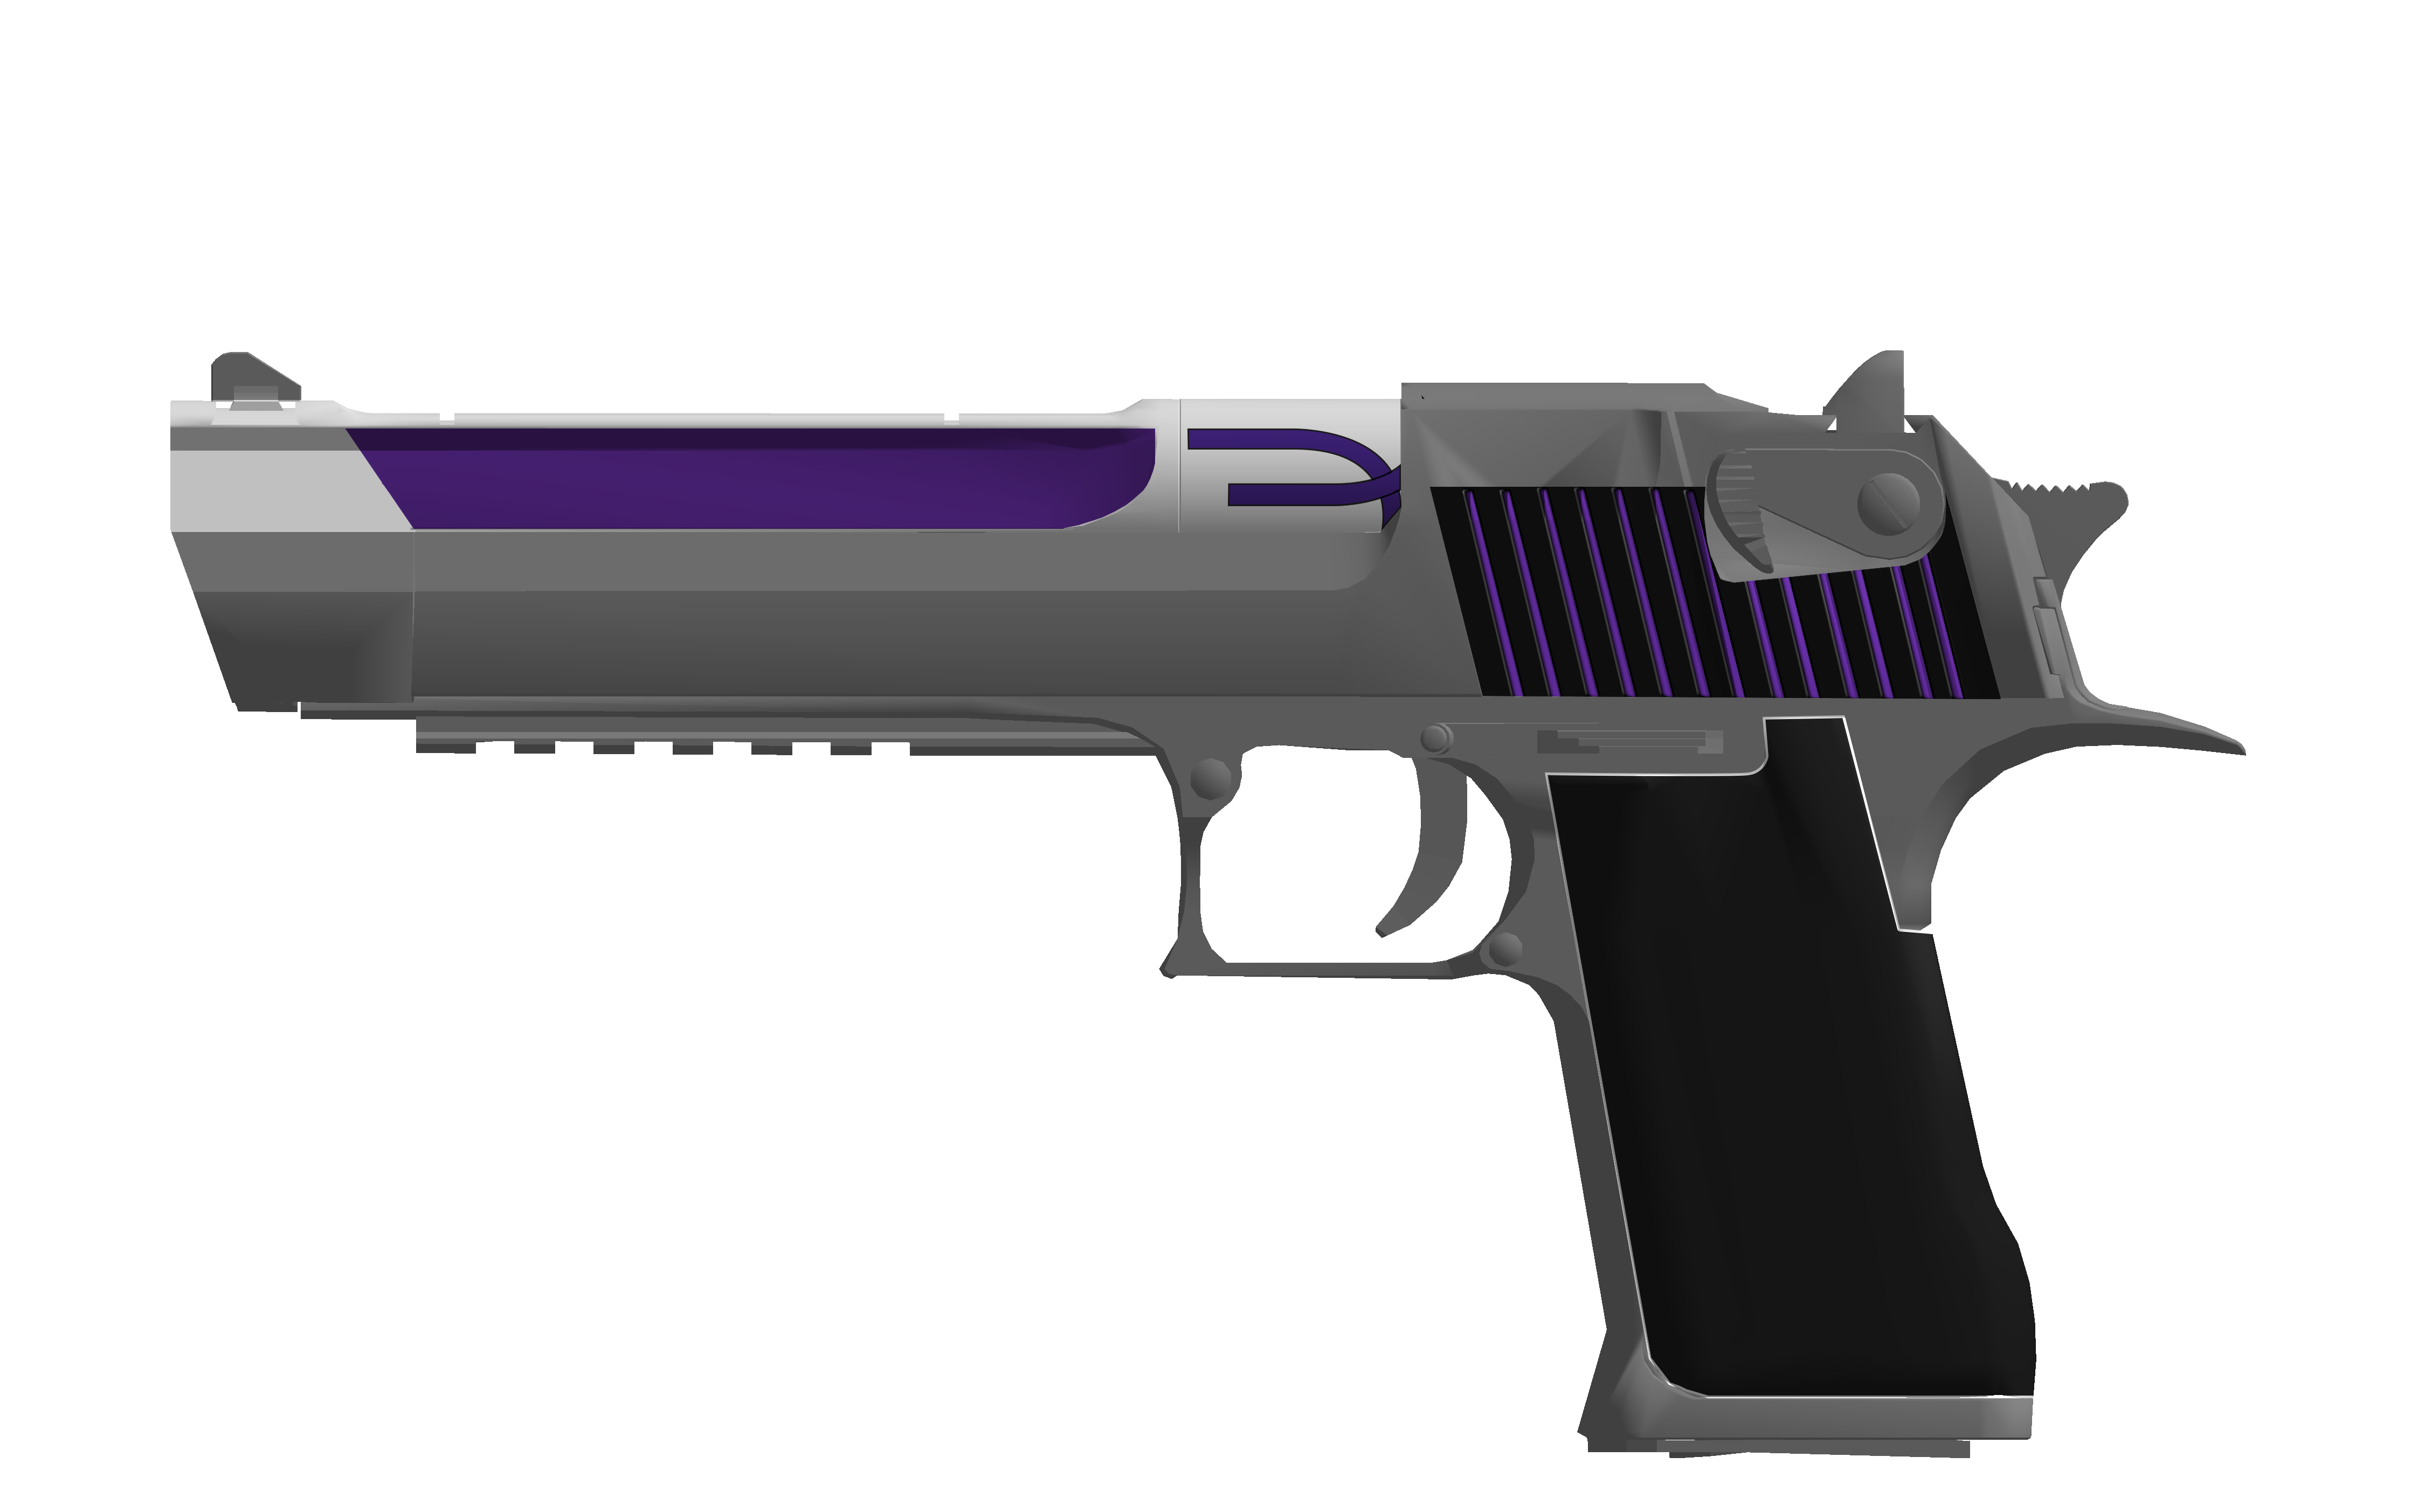 Csgo desert eagle png. Pc wip polycount